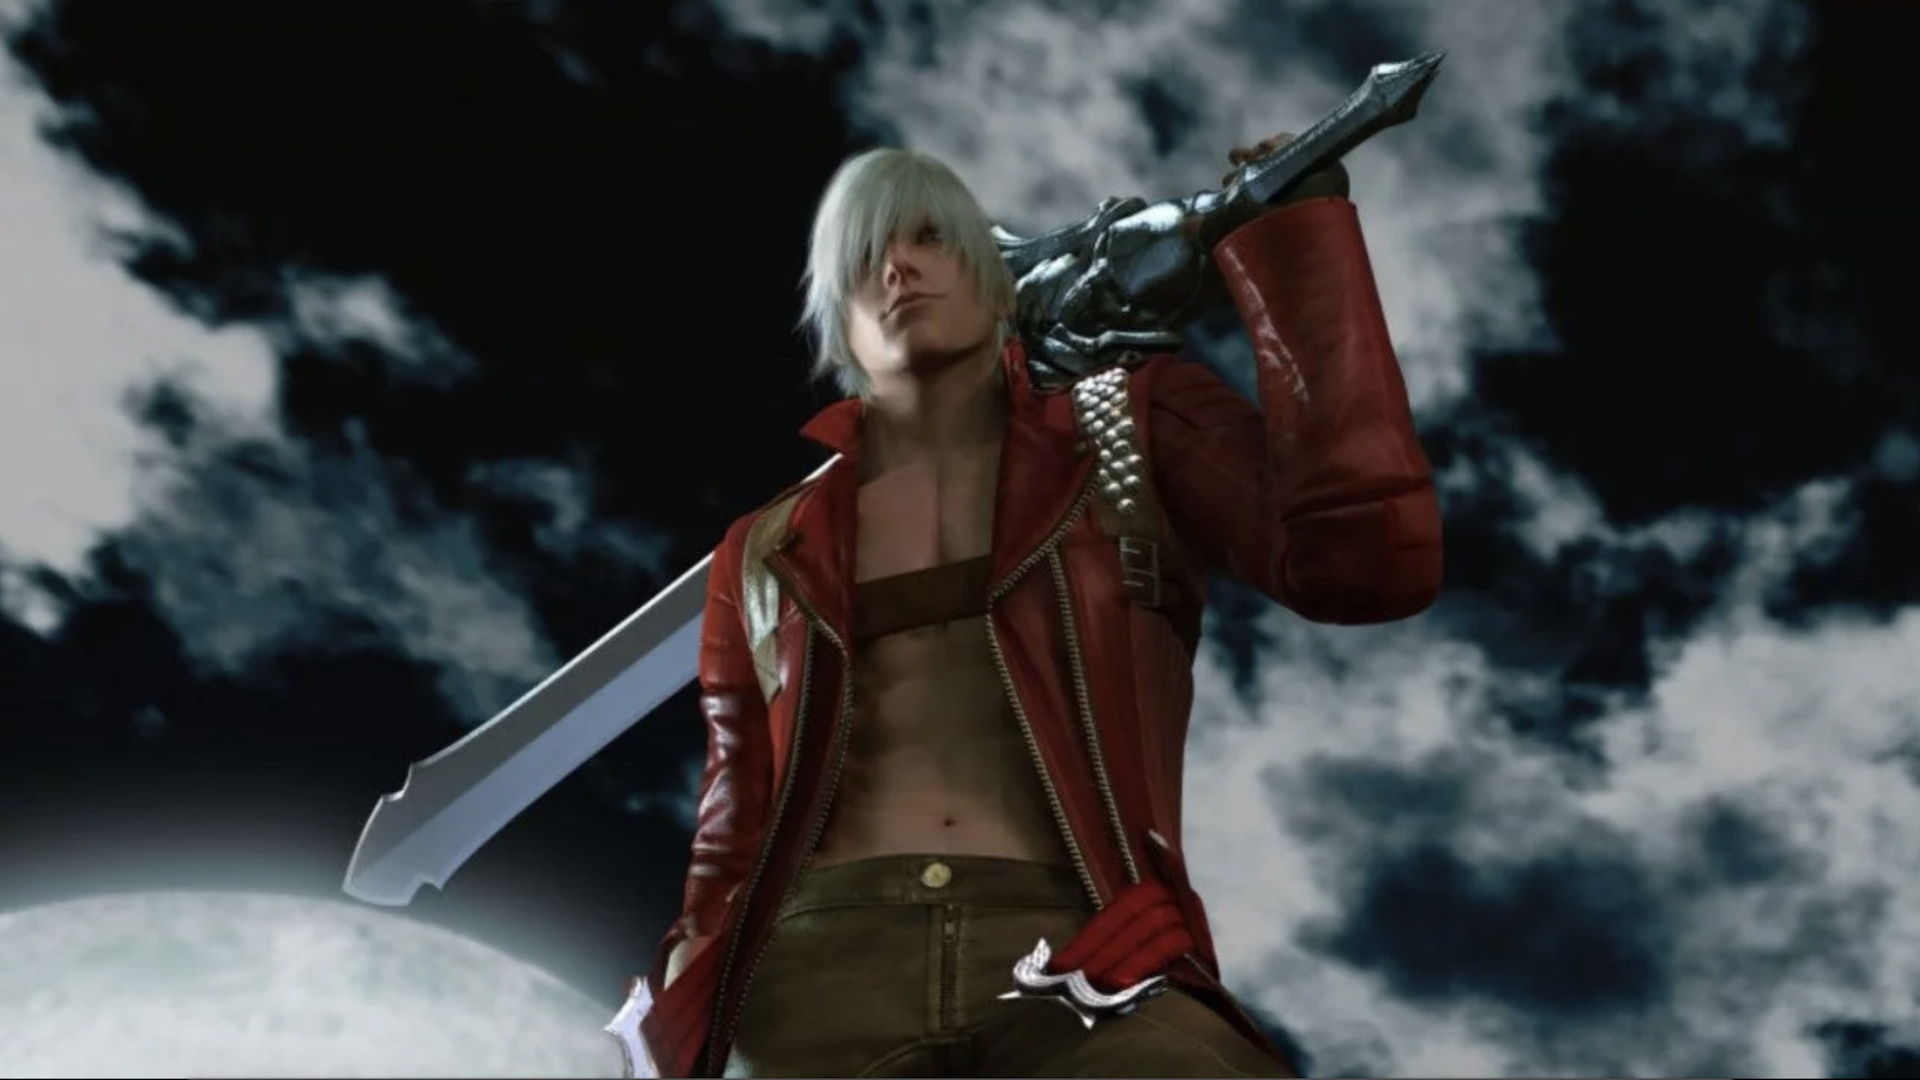 Devil May Cry 3 S Development Team Would Have Quit Had The Game Failed